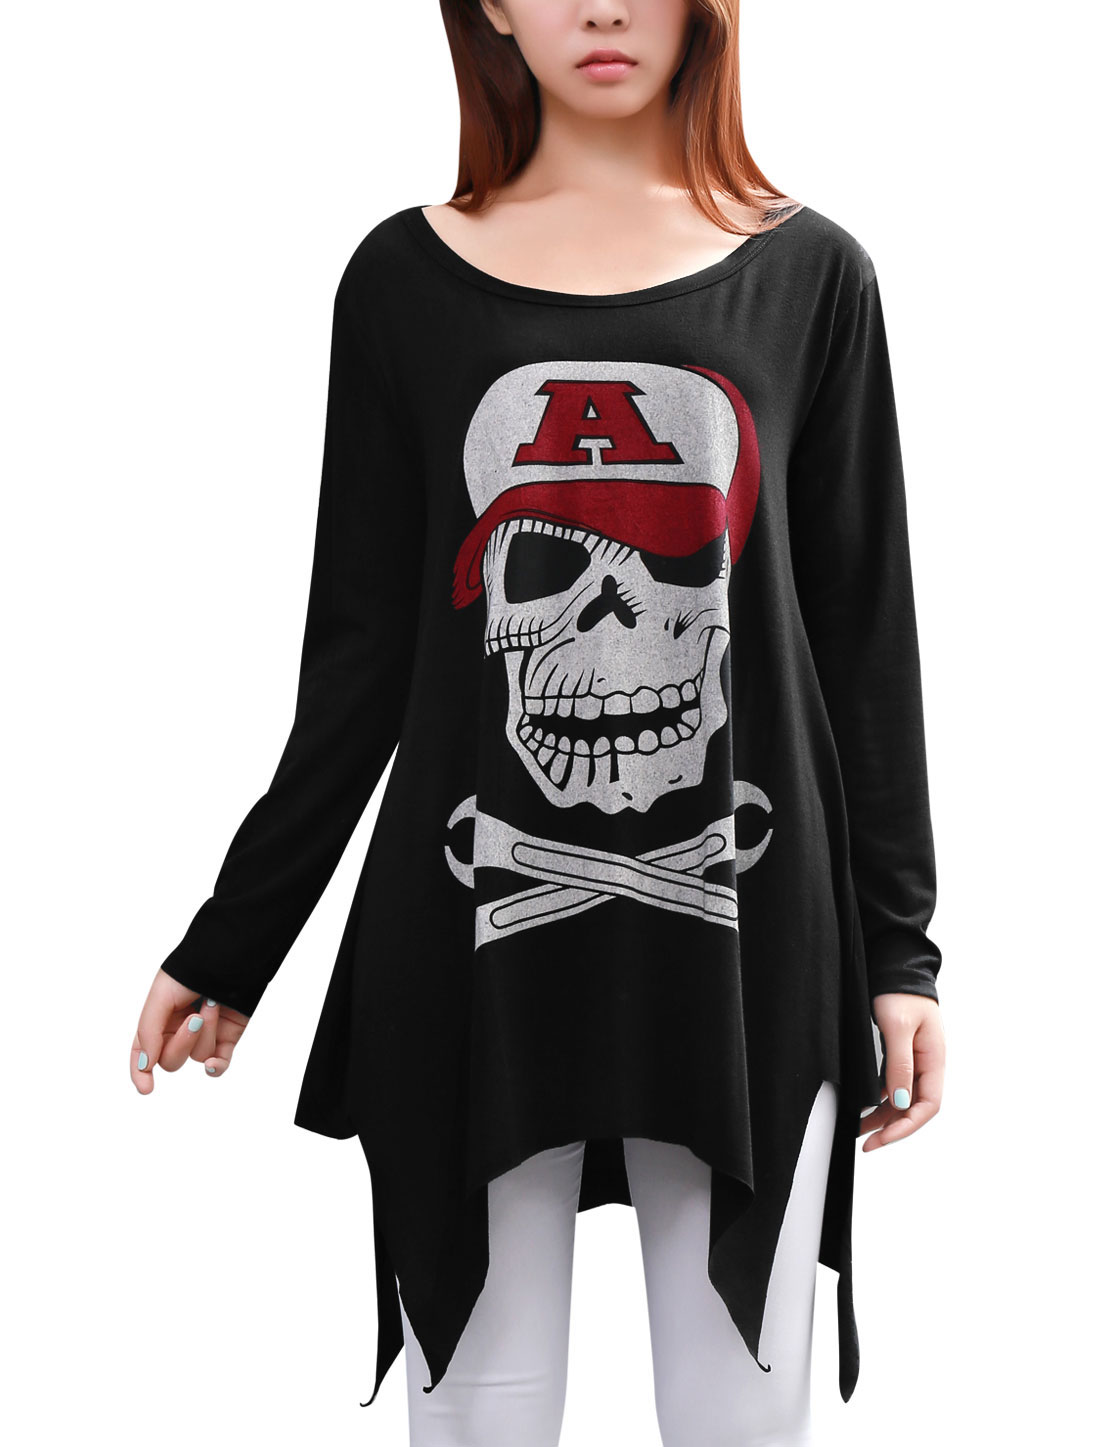 Women Newly Round Neck Long Sleeve Skull Pattern Black Loose Top Shirt XL